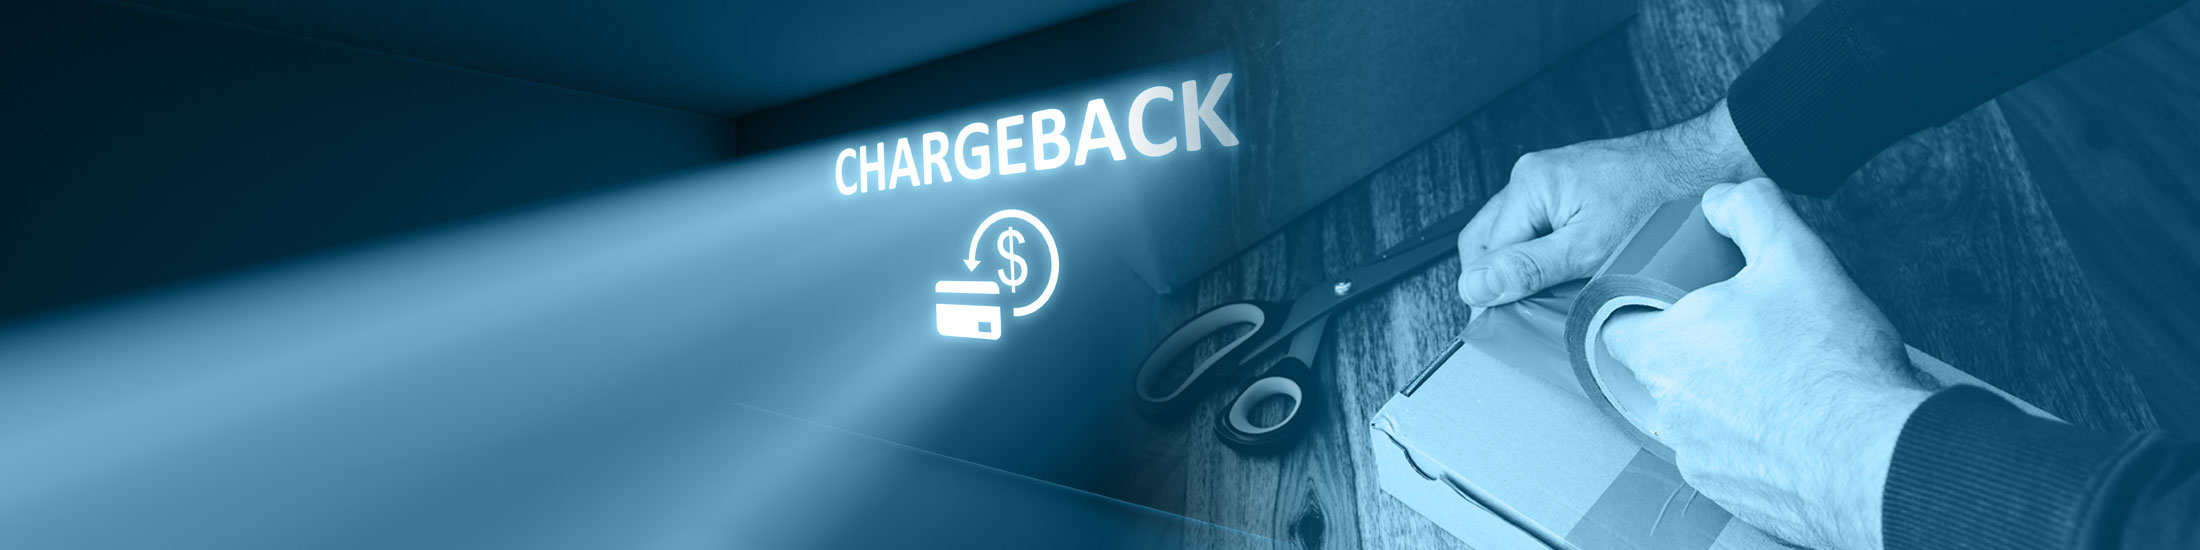 Returns and Chargebacks will Dominate January and February for E-Com Merchants